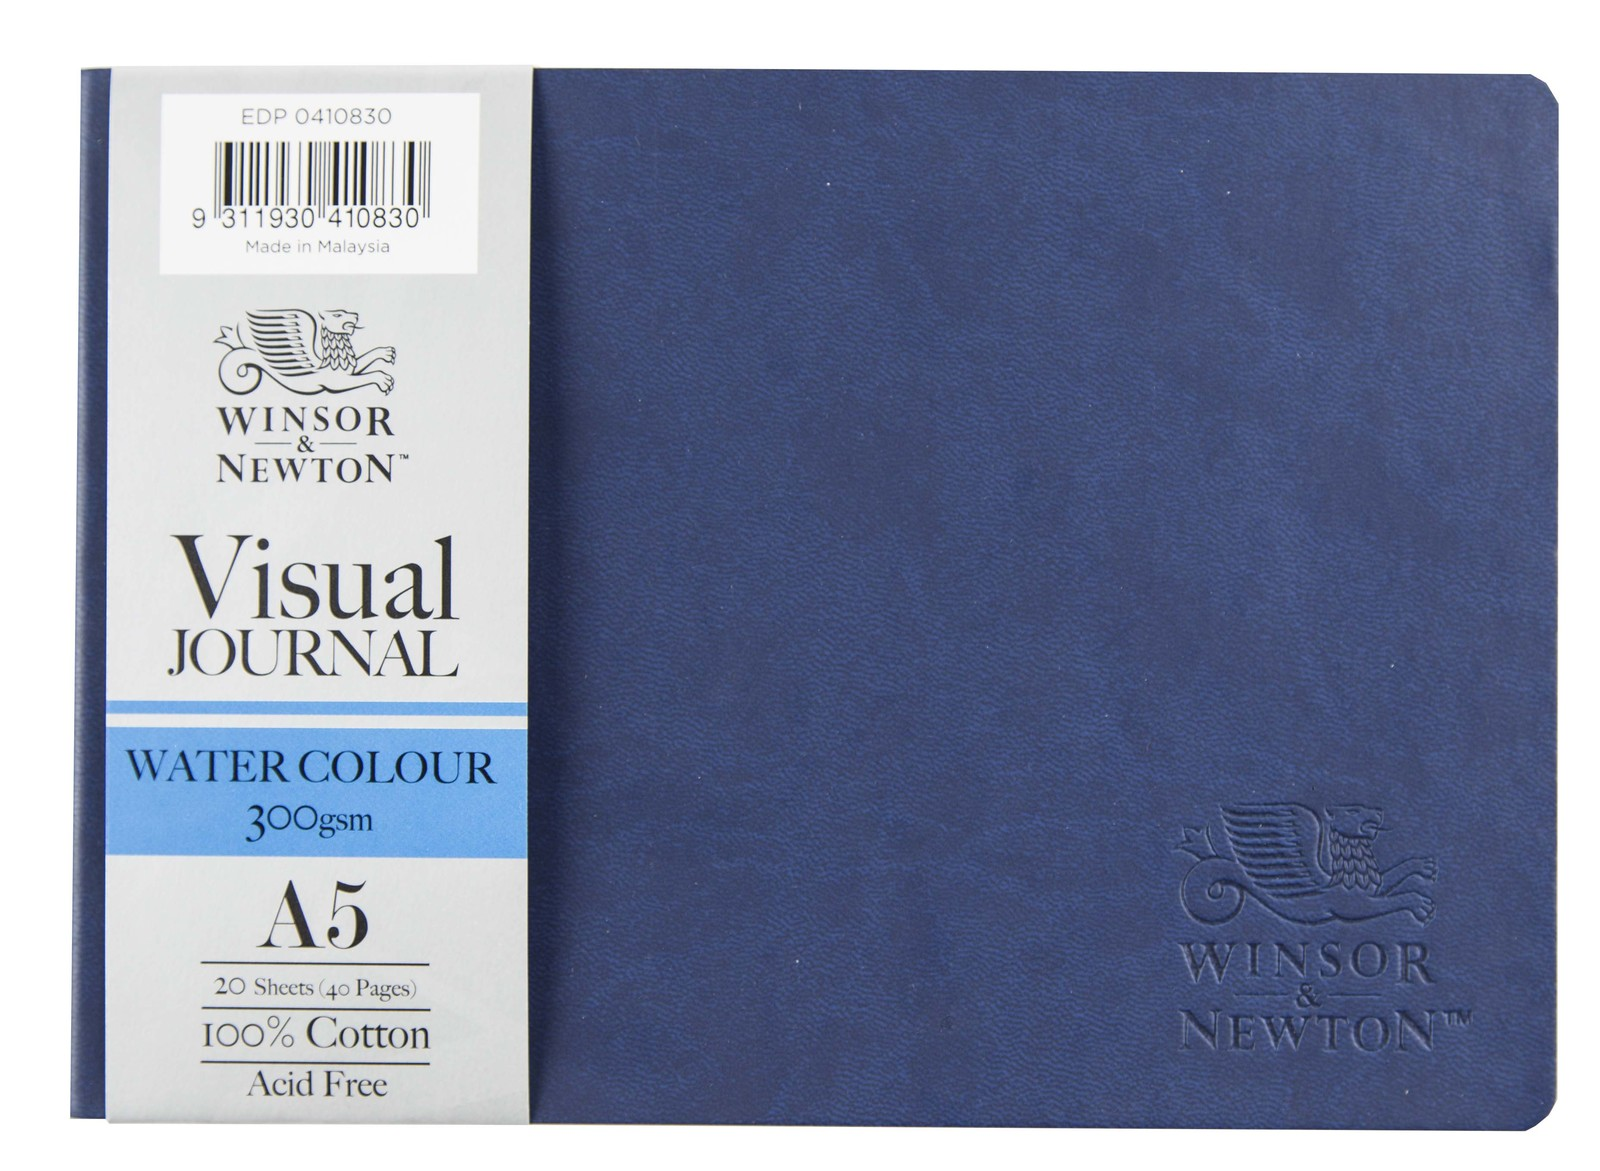 Winsor & Newton: Softcover Watercolour Journal - A5 (300gsm) image